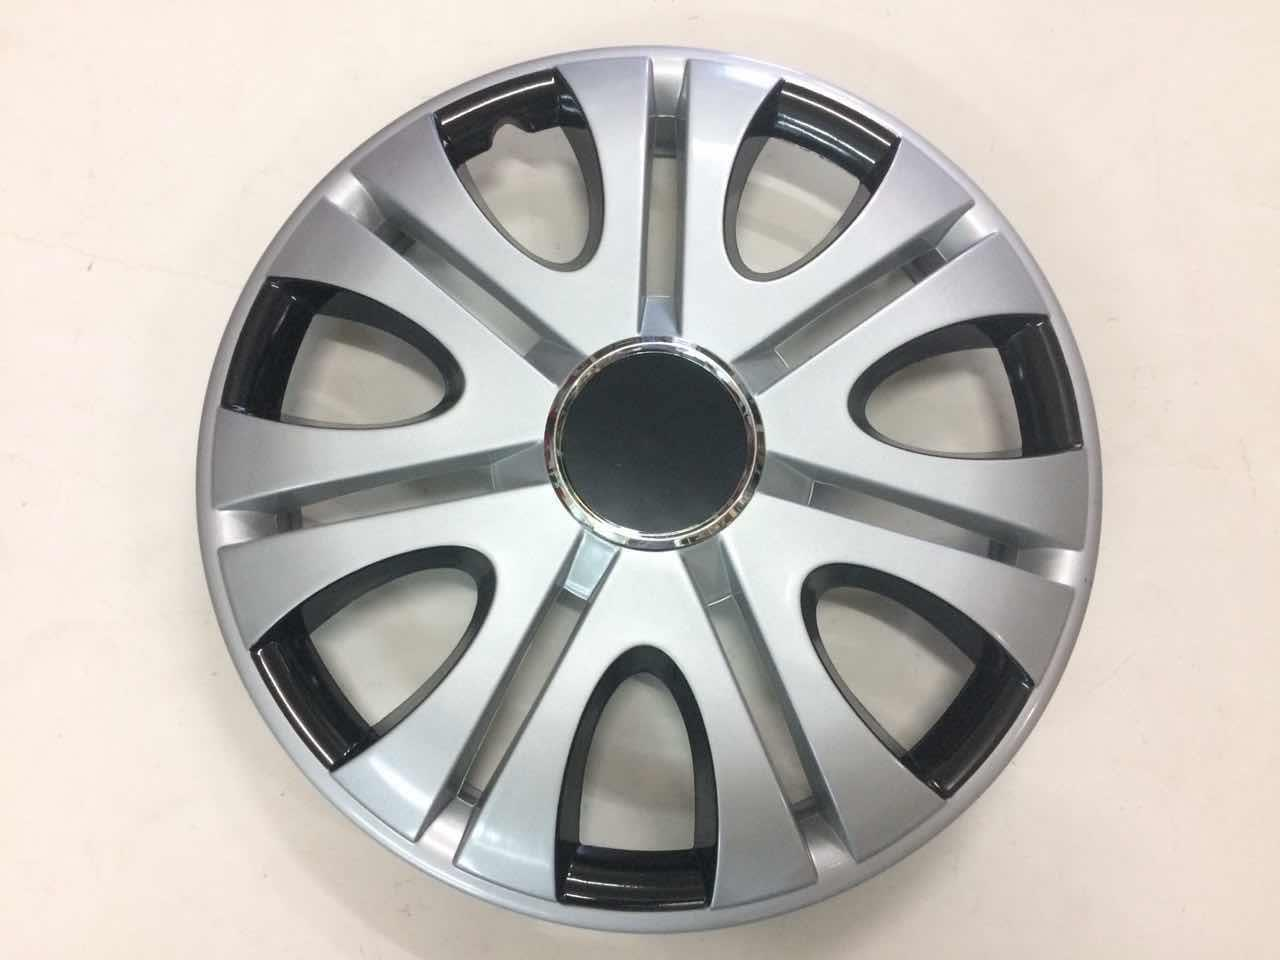 13 INCHES WHEEL COVER 5082 BK13